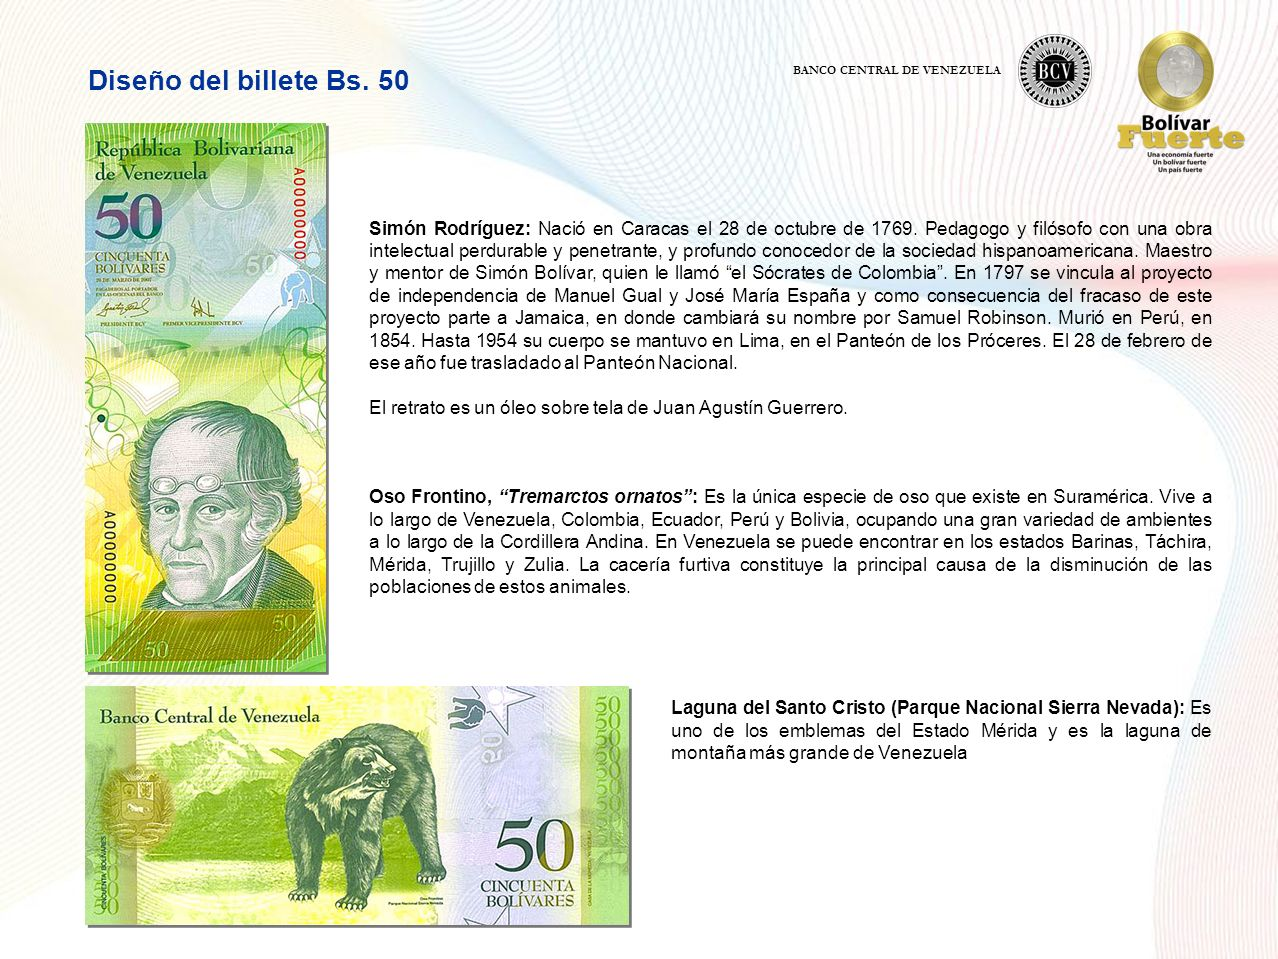 Diseño del billete Bs. 50 BANCO CENTRAL DE VENEZUELA.